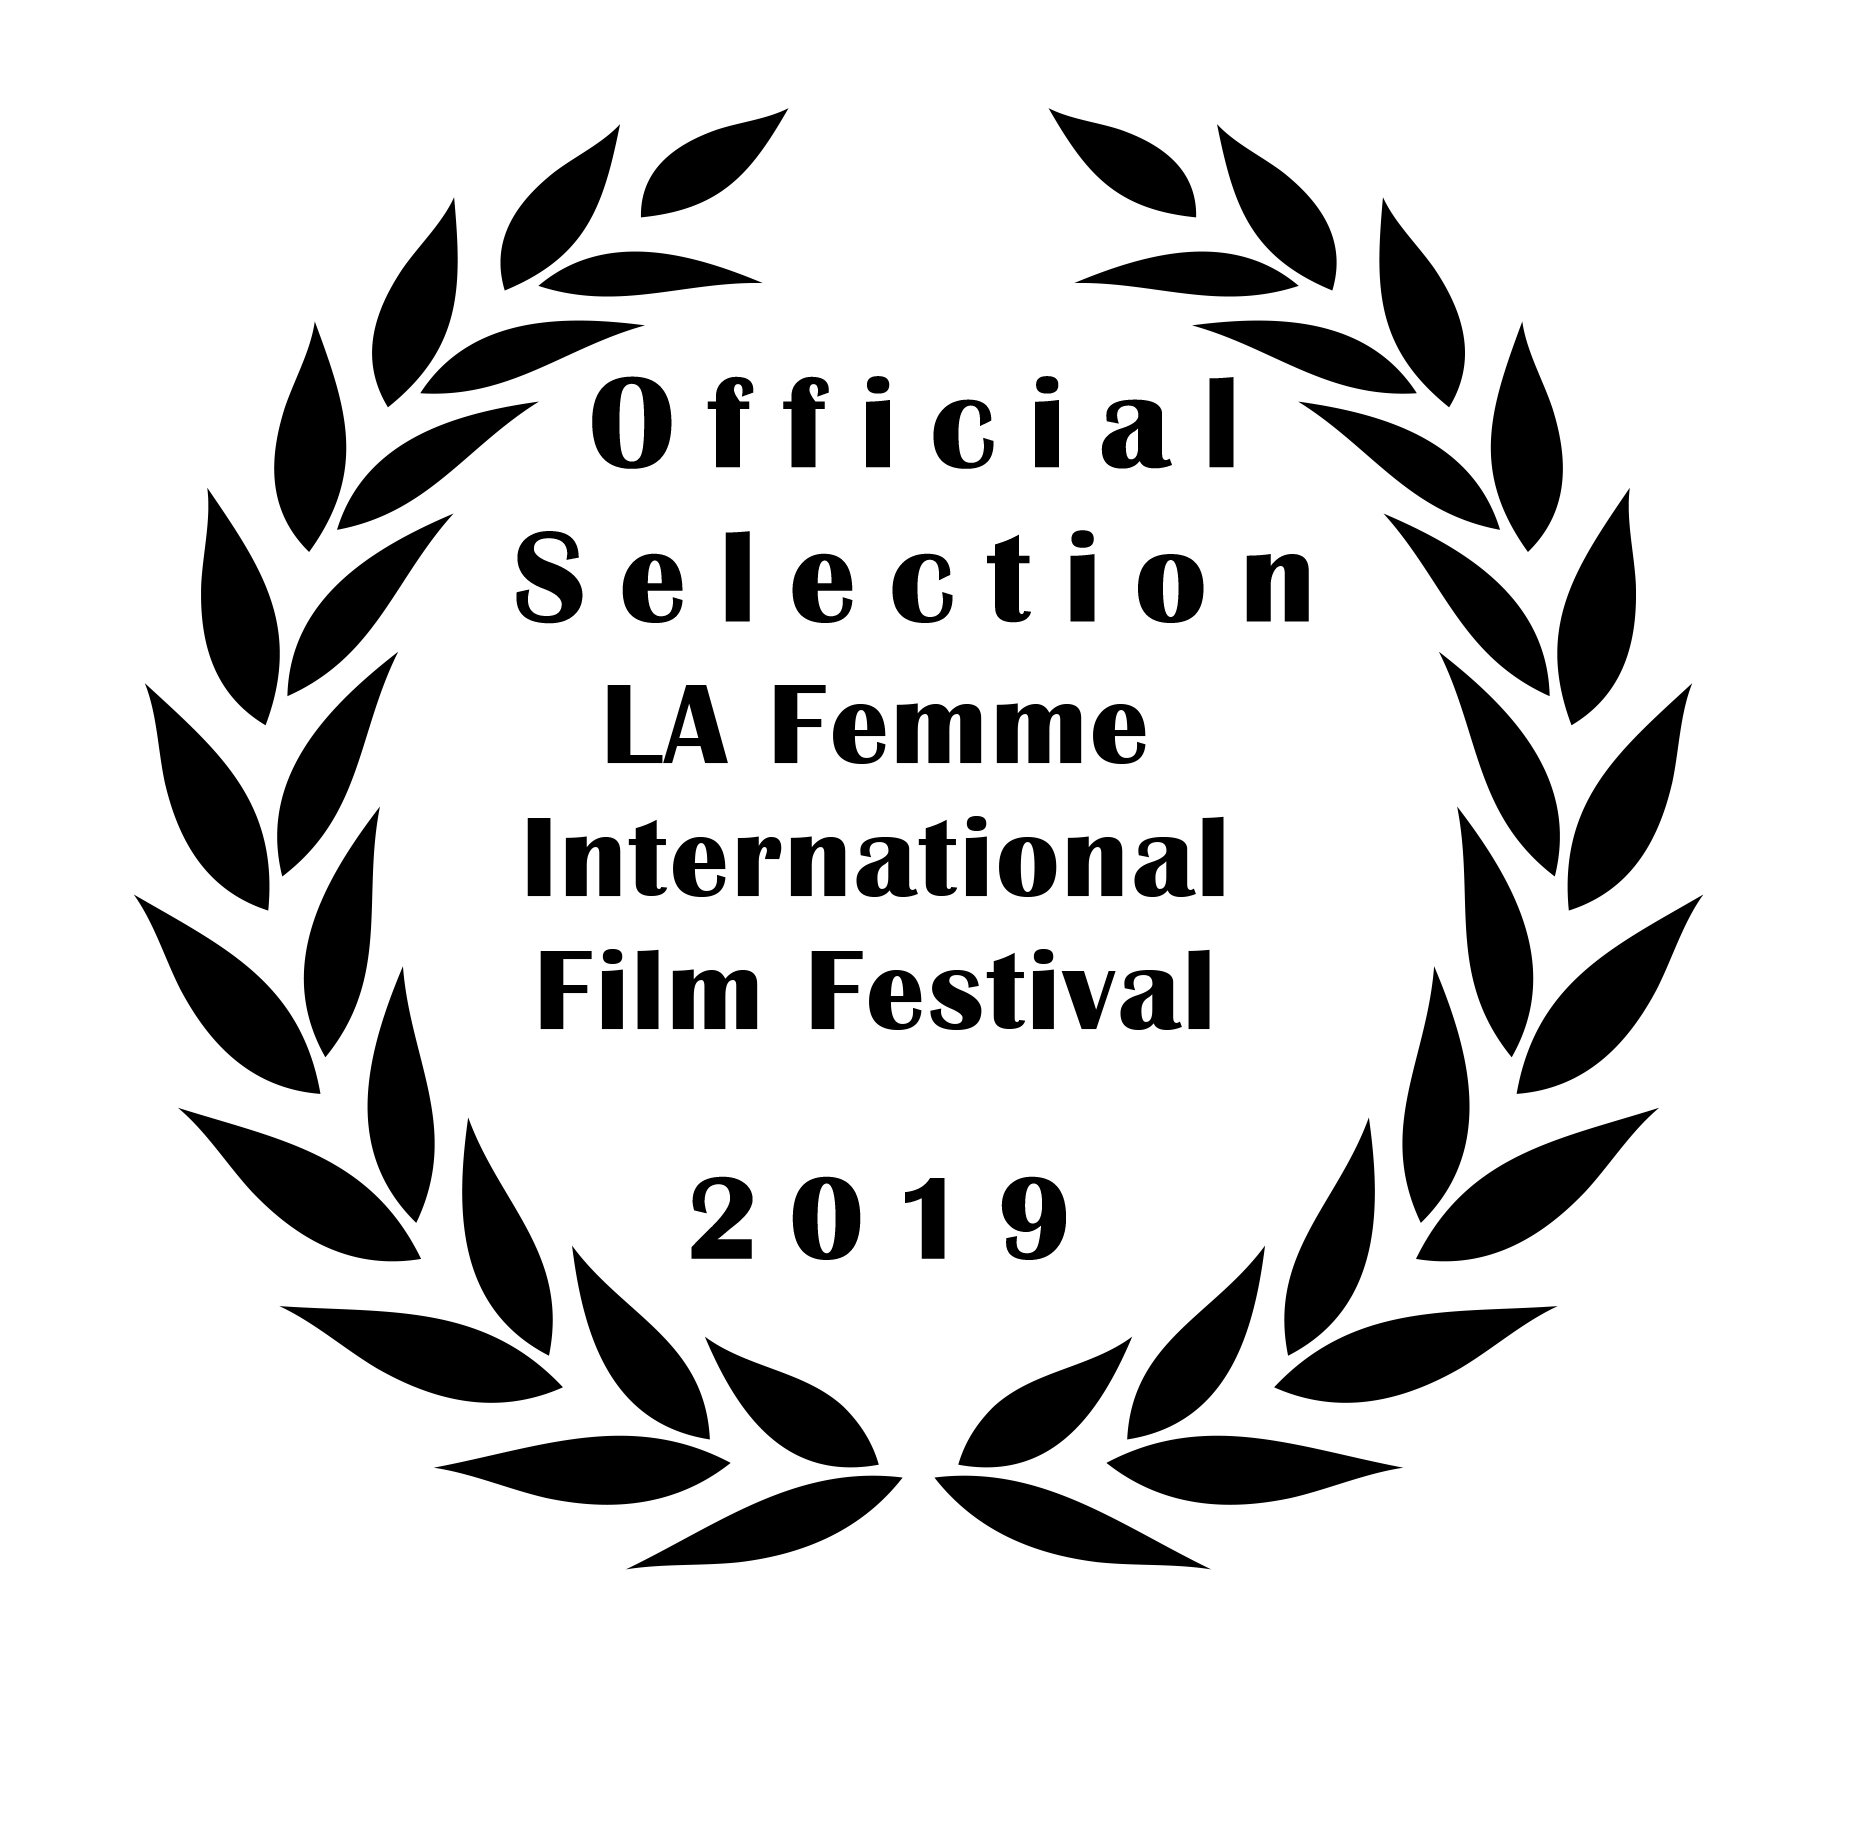 La Femme Film Festival - Los Angeles, CA3:00 PM, October 20, 2019Regal Cinemas 14, LA Livehttps://www.lafemme.org/tickets/